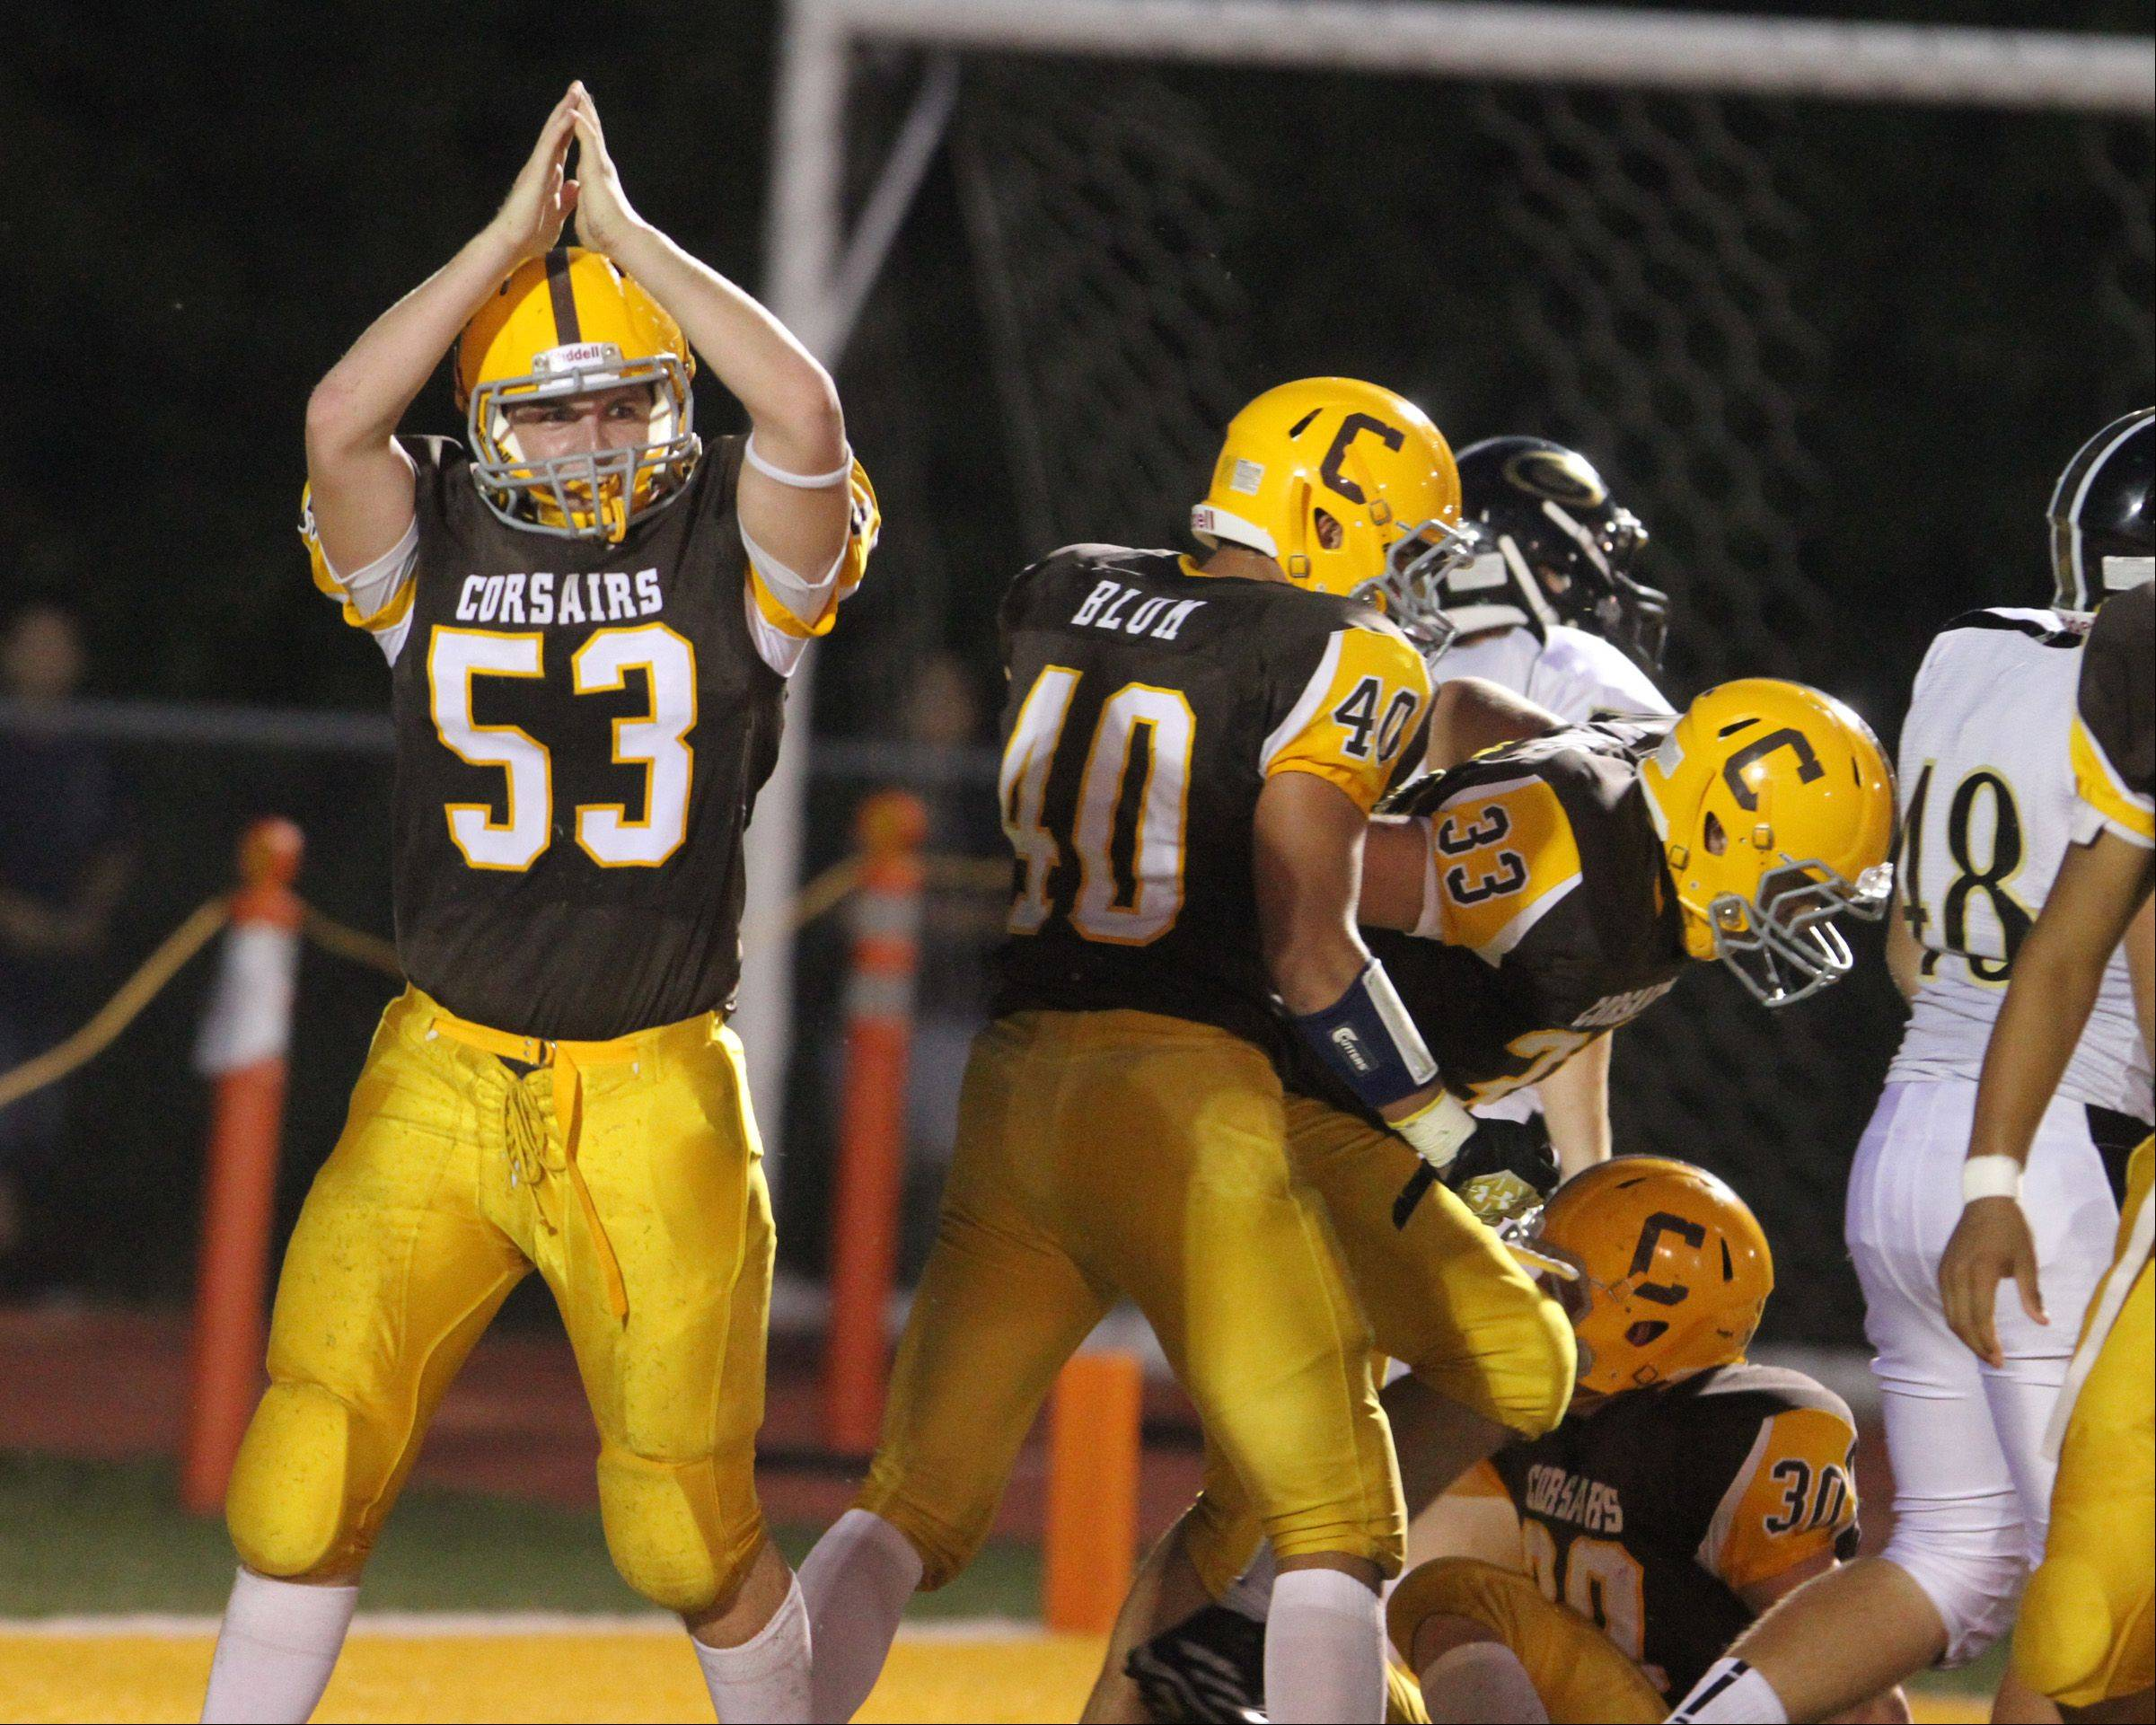 Carmel's Grant Stredler signals a safety against Glenbard North in the first quarter.